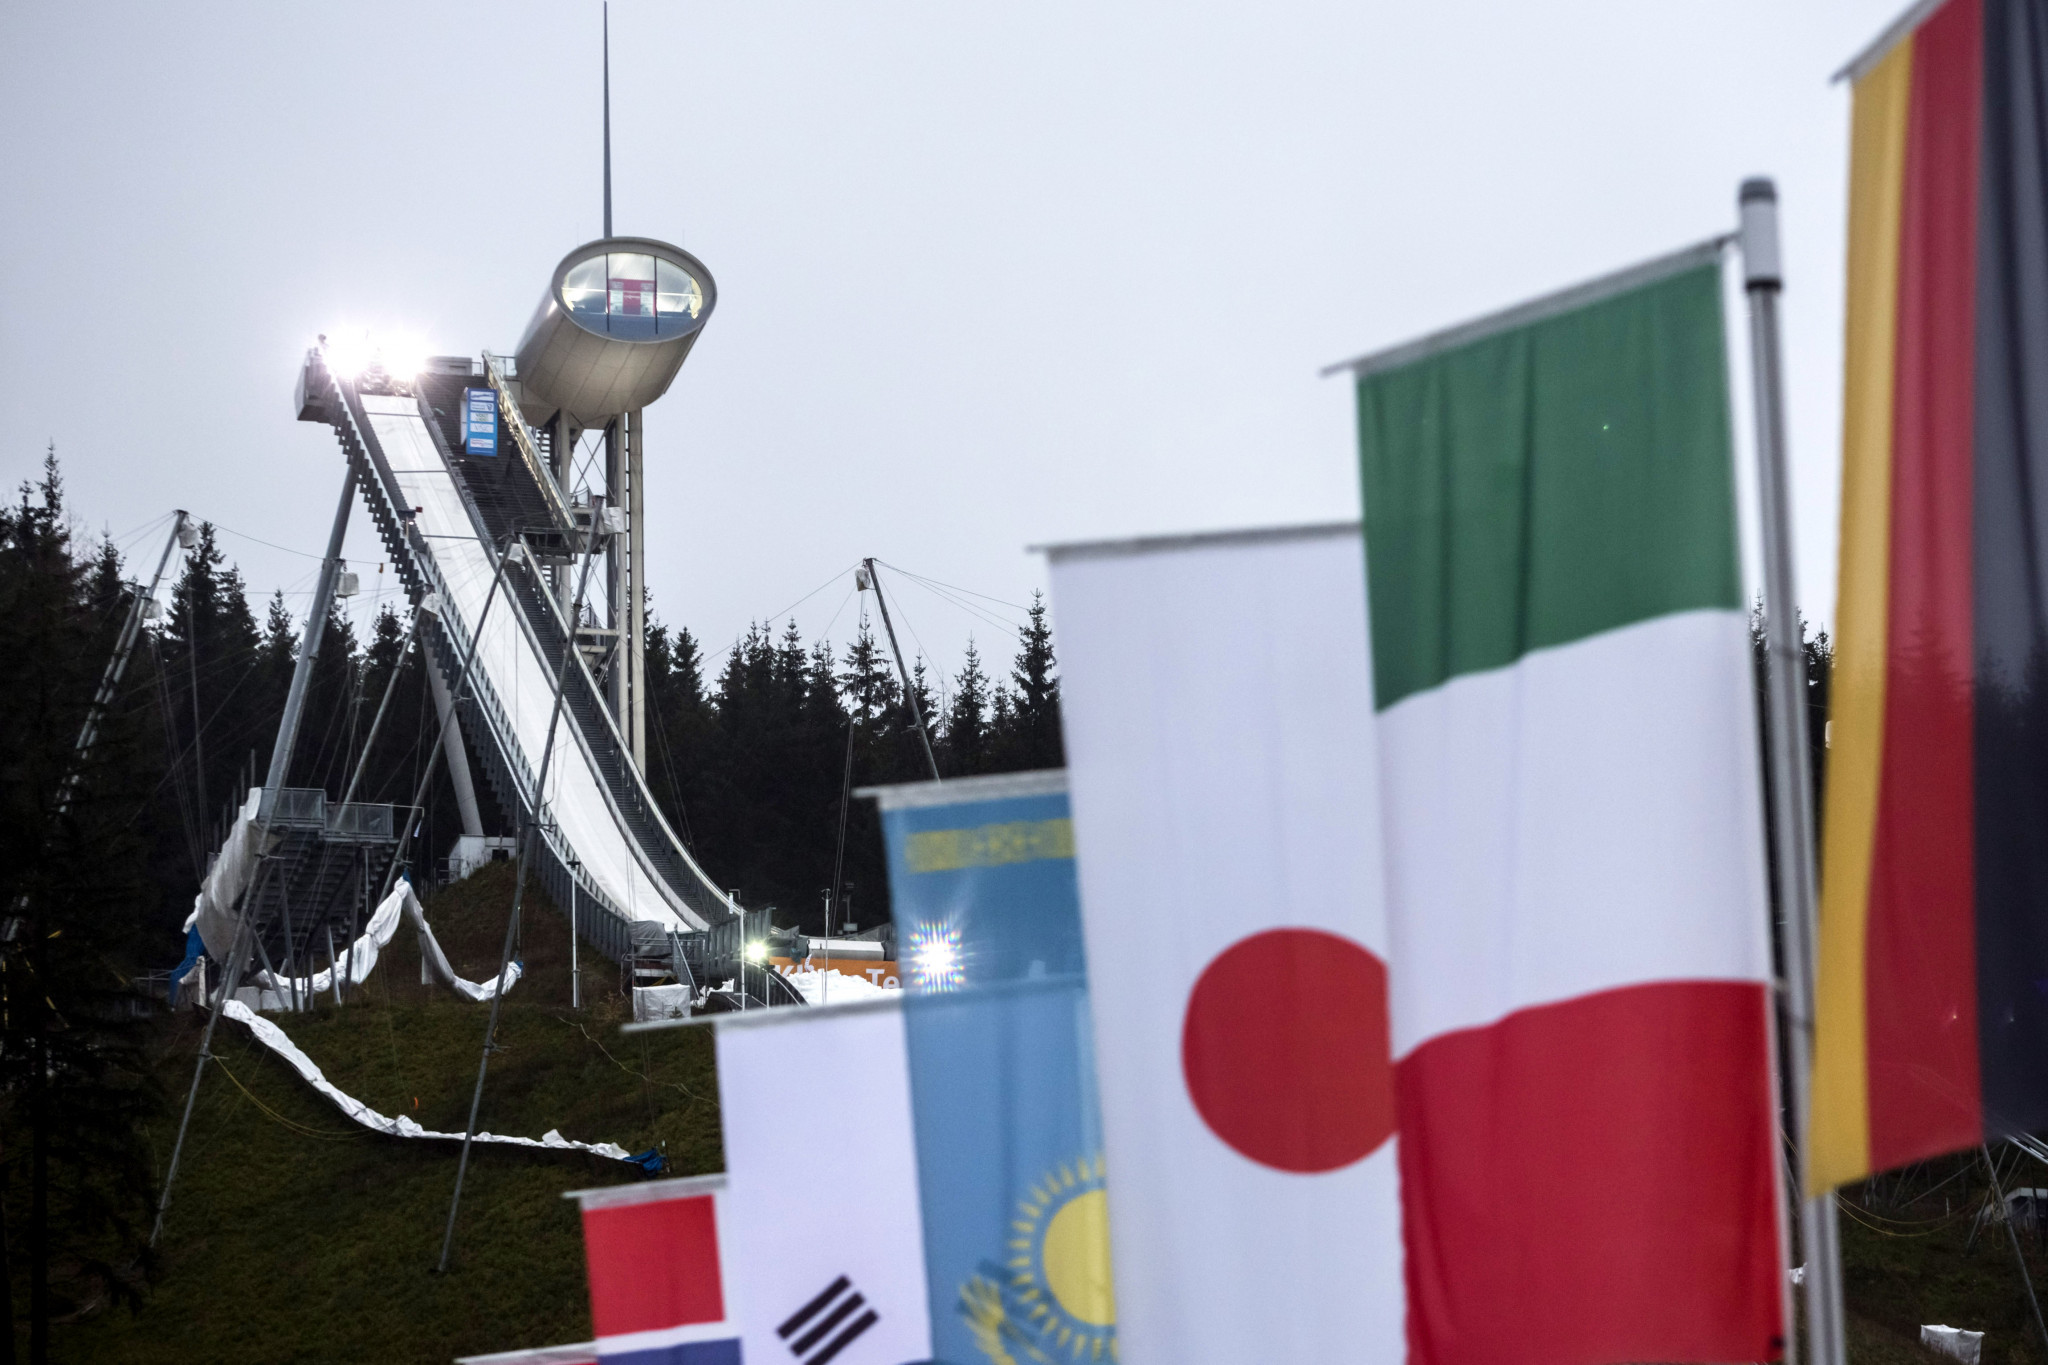 The Vogtland Arena is the host of numerous ski jumping and Nordic combined competitions ©Getty Images